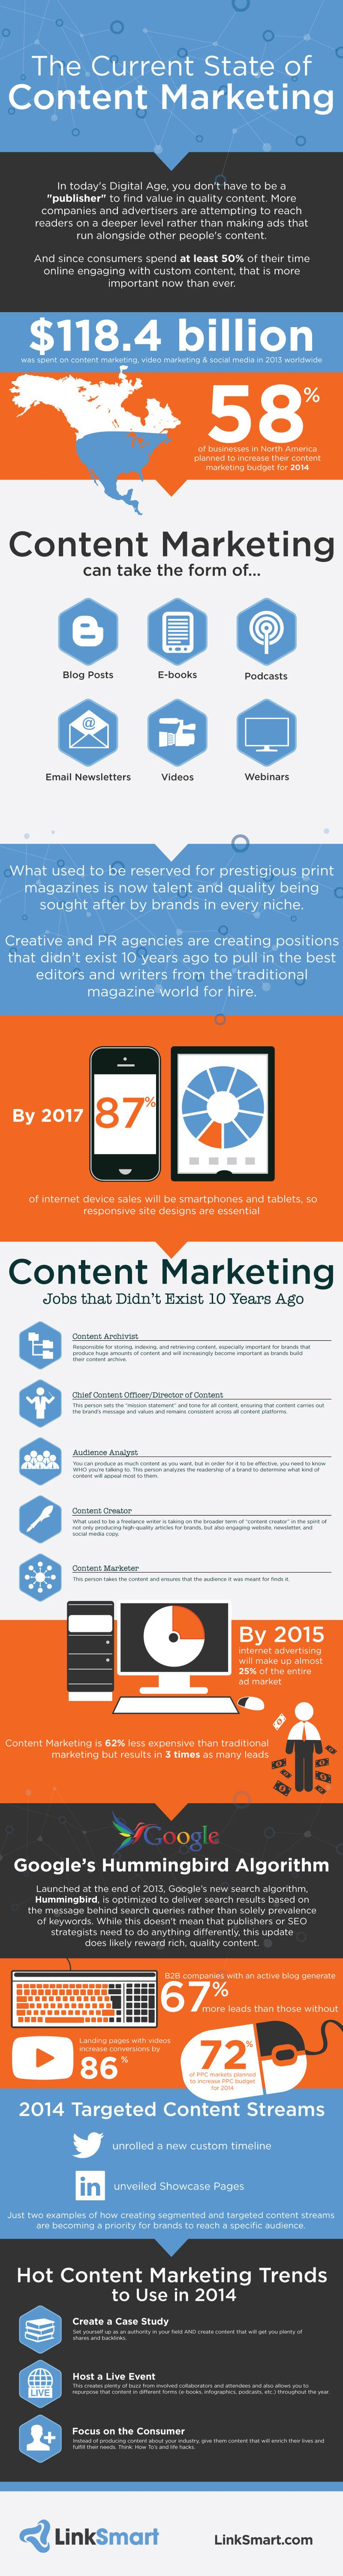 The State of #ContentMarketing in 2014 - #infographic